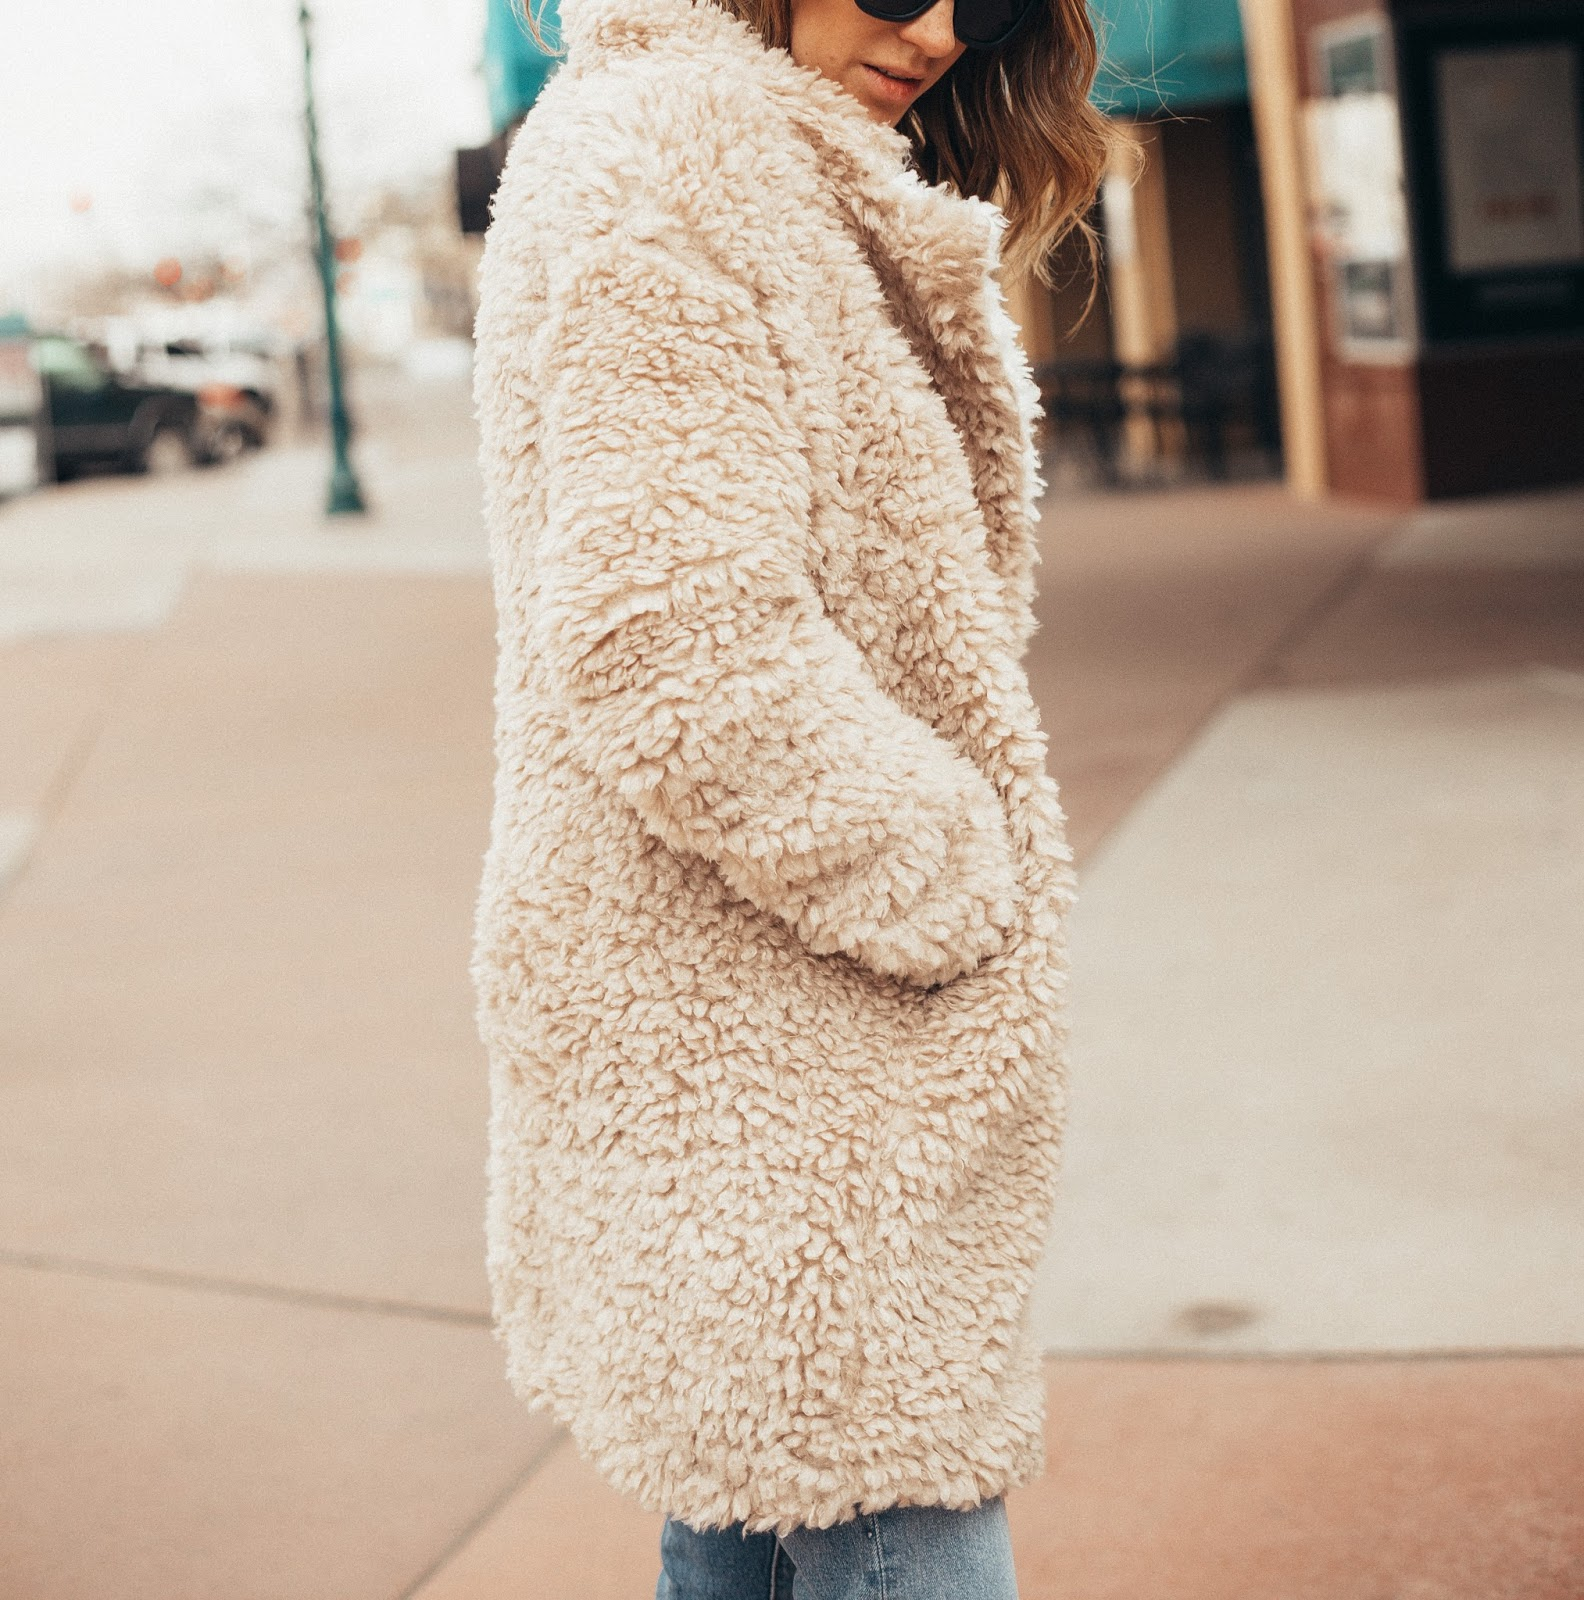 The Best Teddy Bear Coats Under $100 by Colorado fashion blogger Eat Pray Wear Love